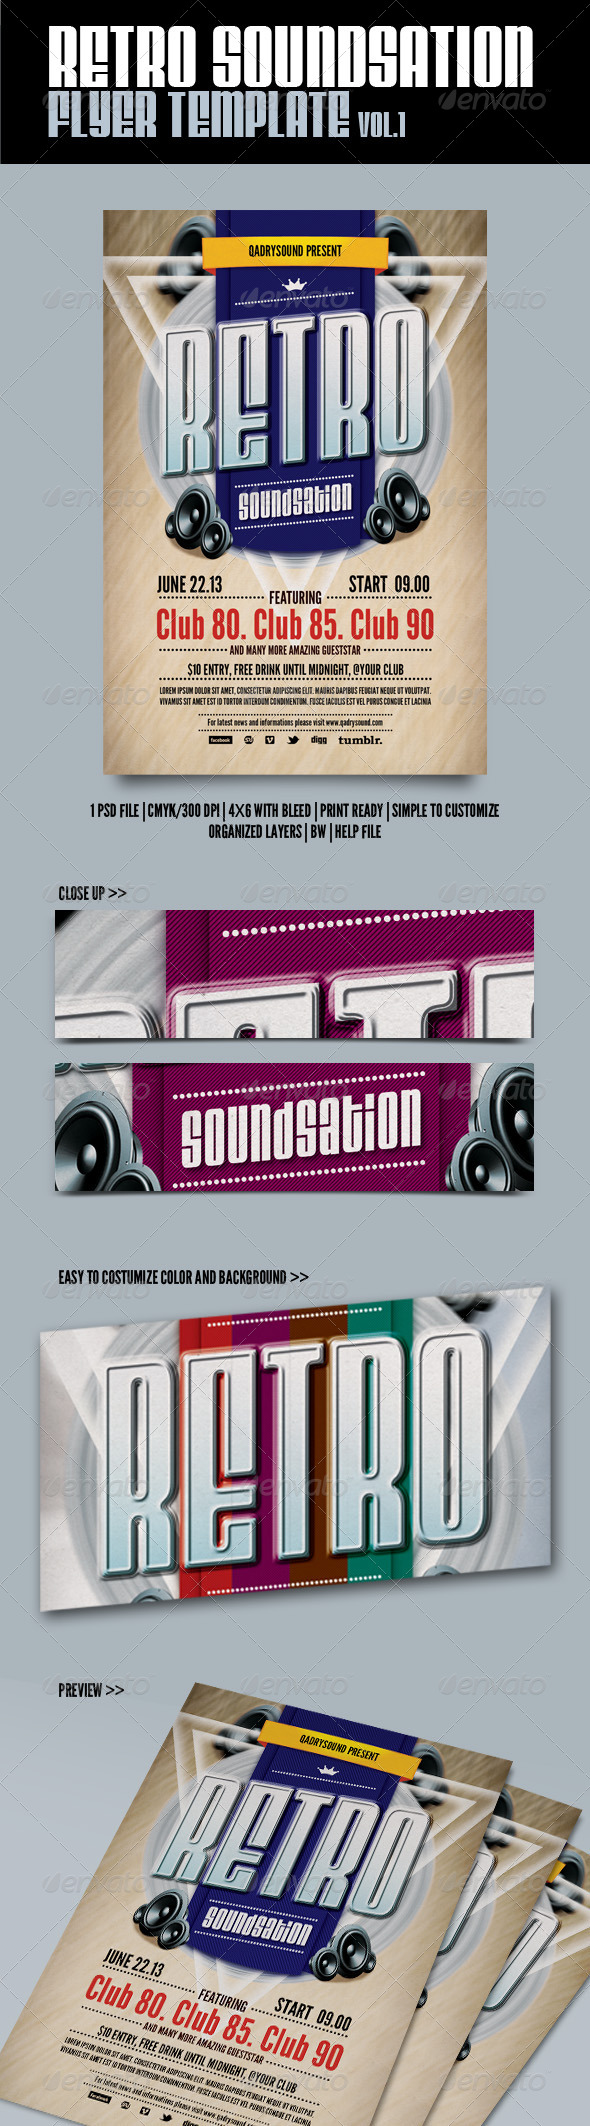 Retro Soundnation Flyer Template - Clubs & Parties Events